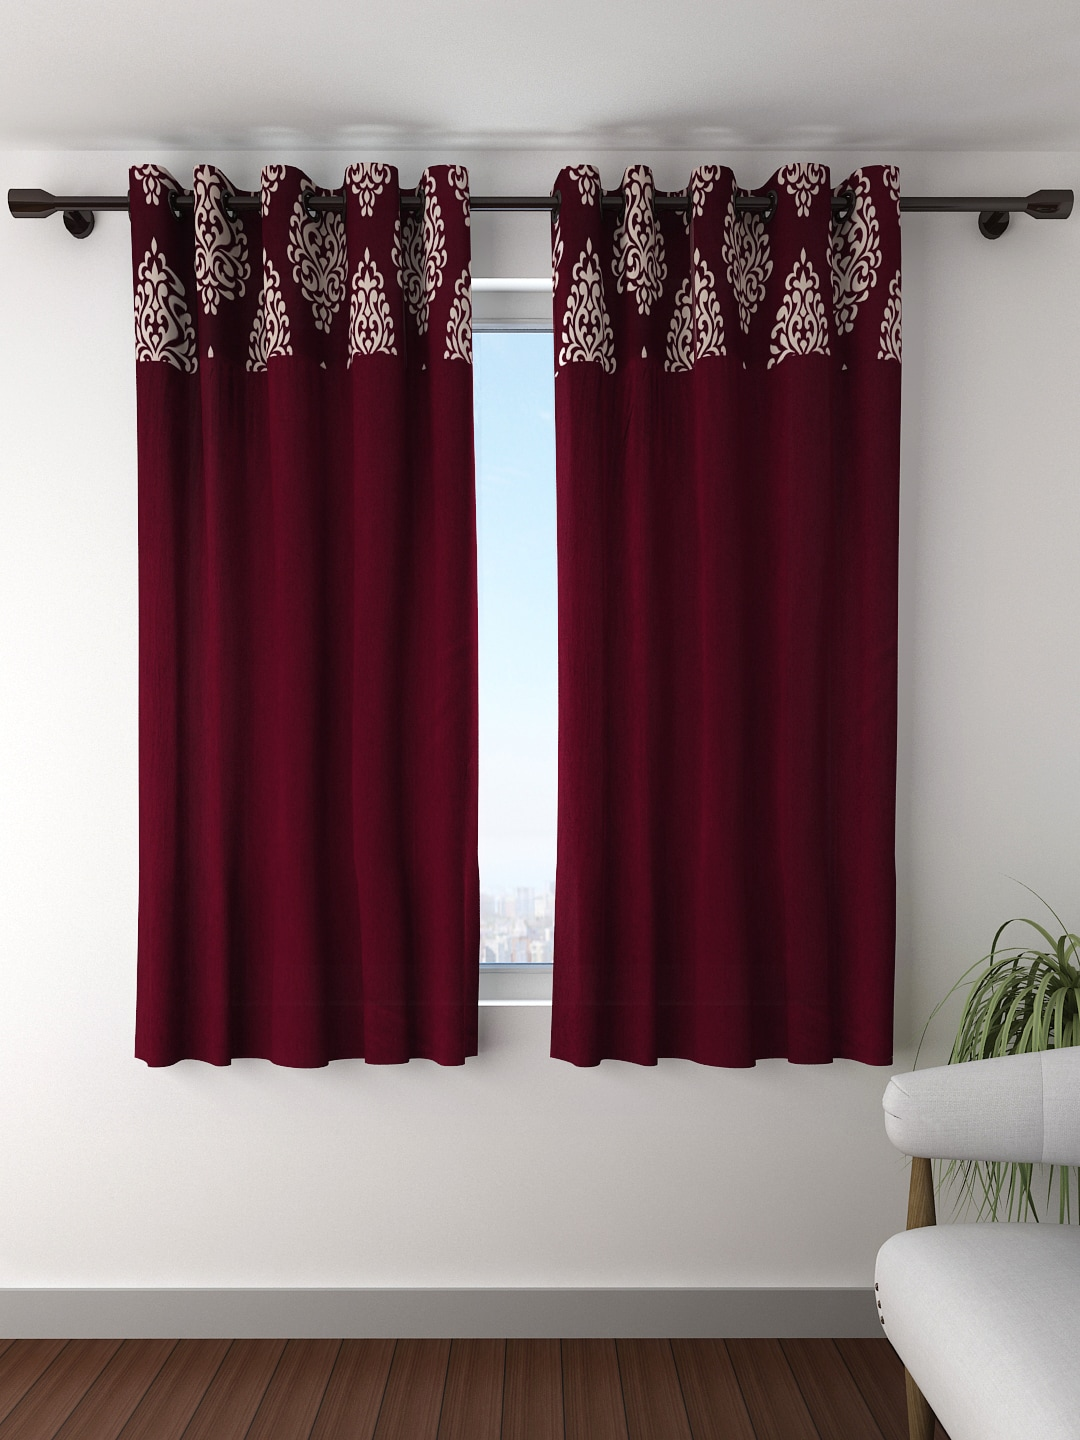 Window curtain - Curtains Buy Window Curtains Door Curtains Sheers Online Myntra